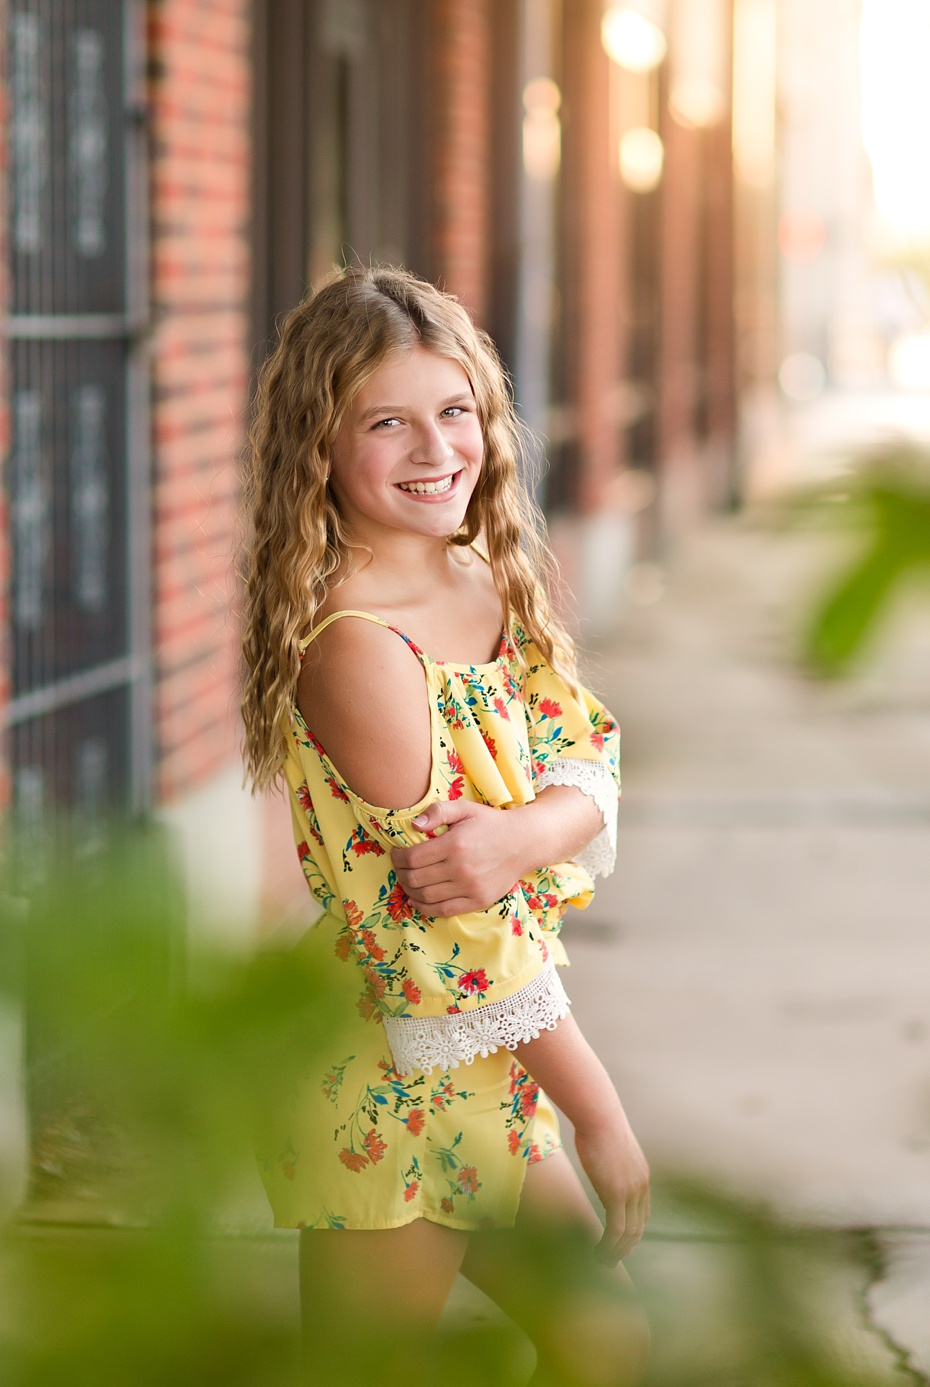 tween_truly_you_photography_enid_photographer-6_web.jpg